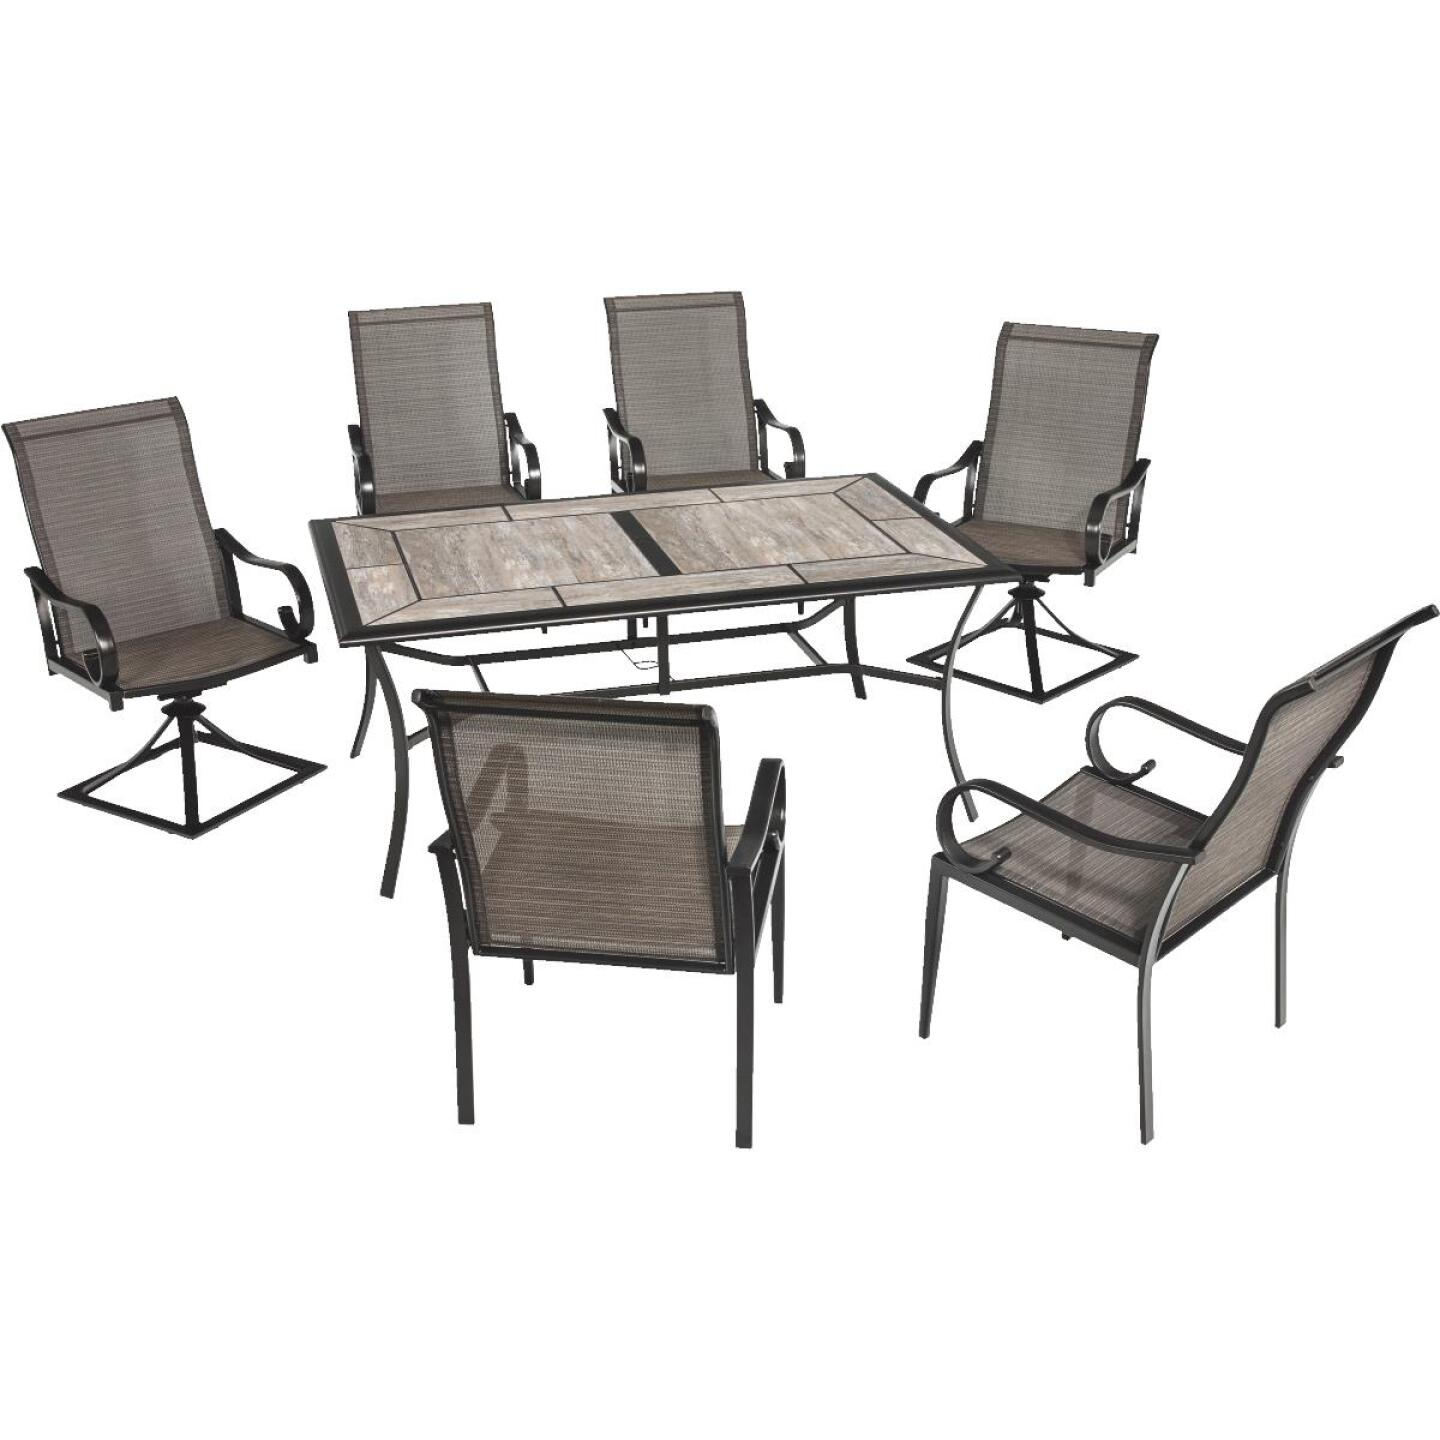 Outdoor Expressions Berkshire 7-Piece Dining Set Image 233